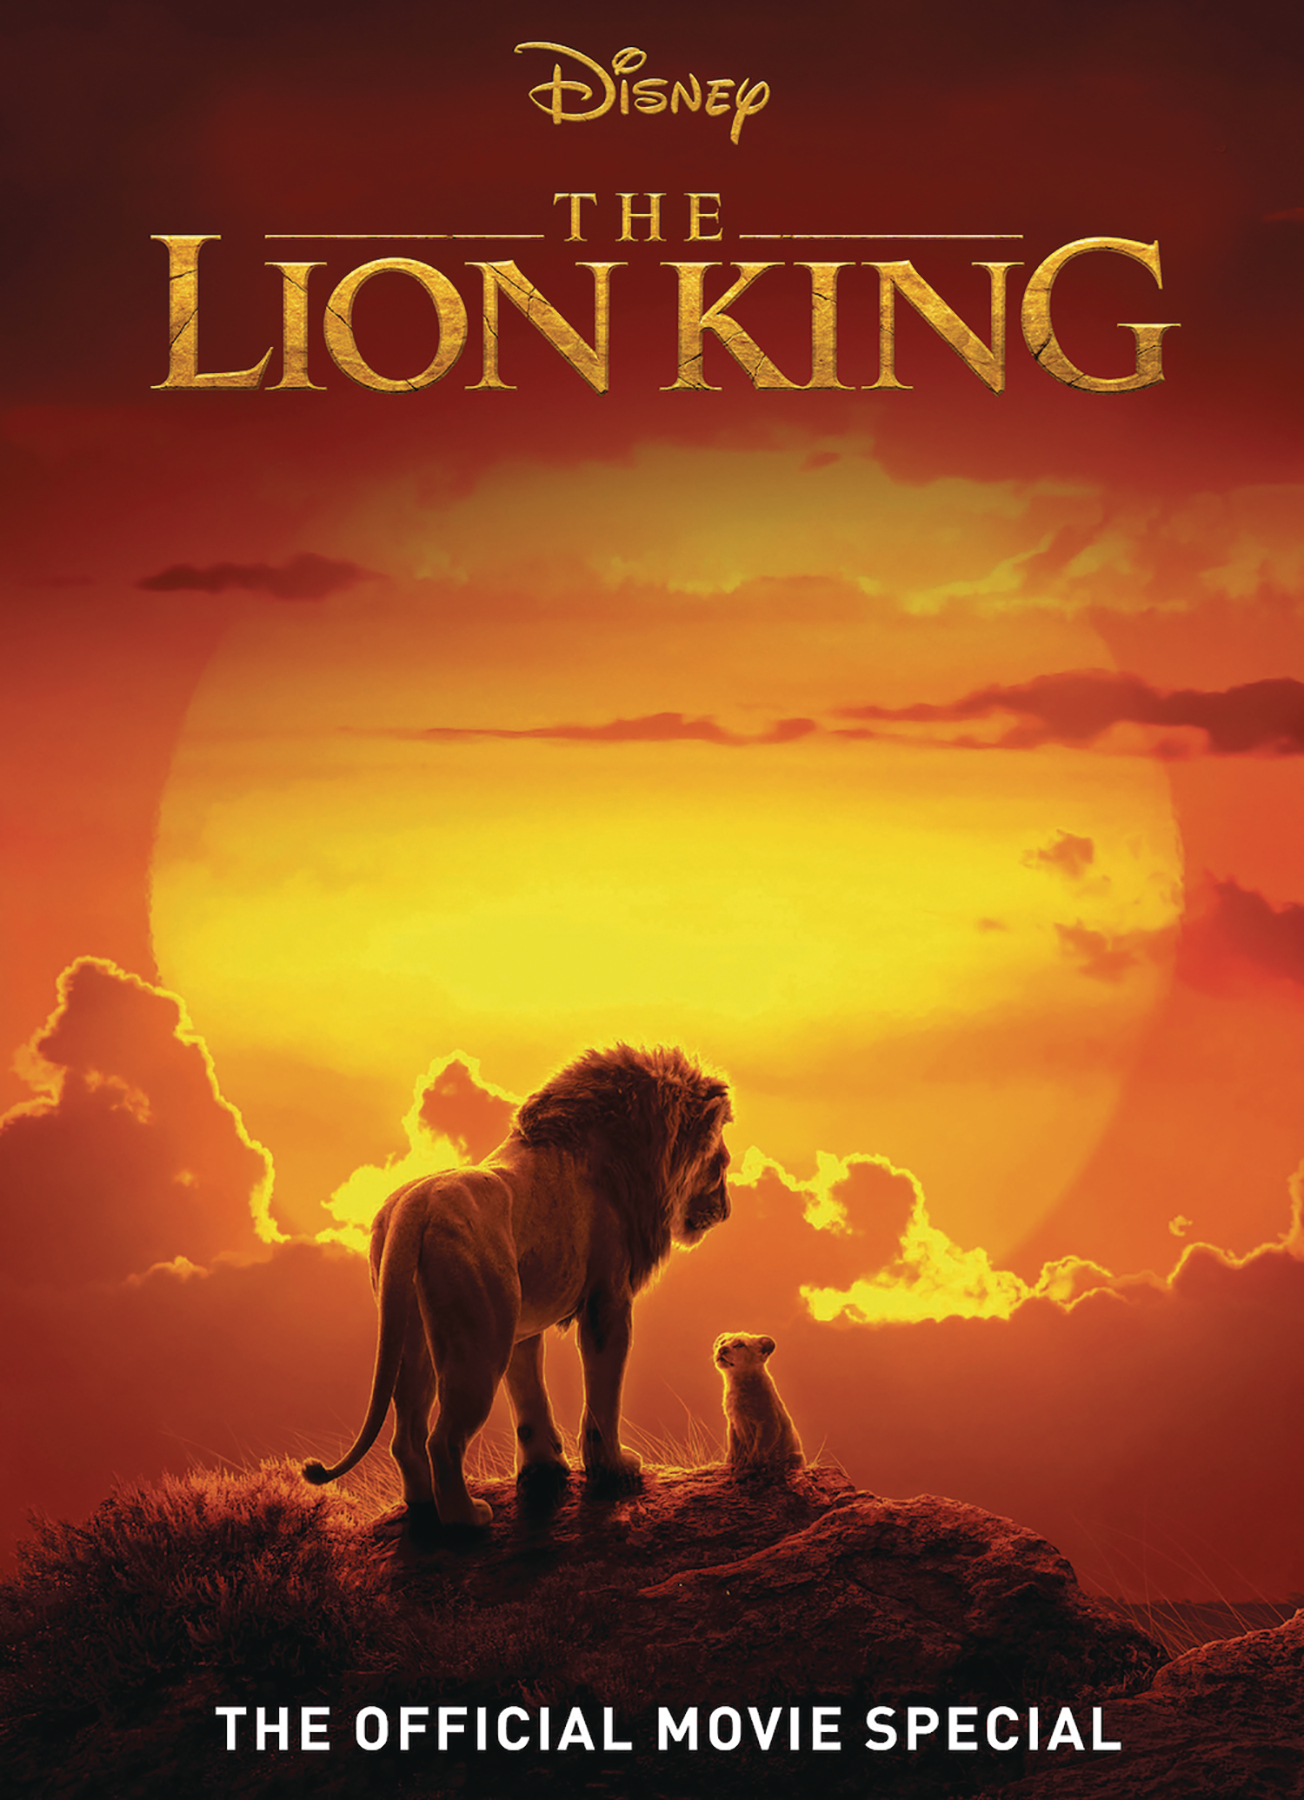 DISNEY LION KING OFF MOVIE SPECIAL HC